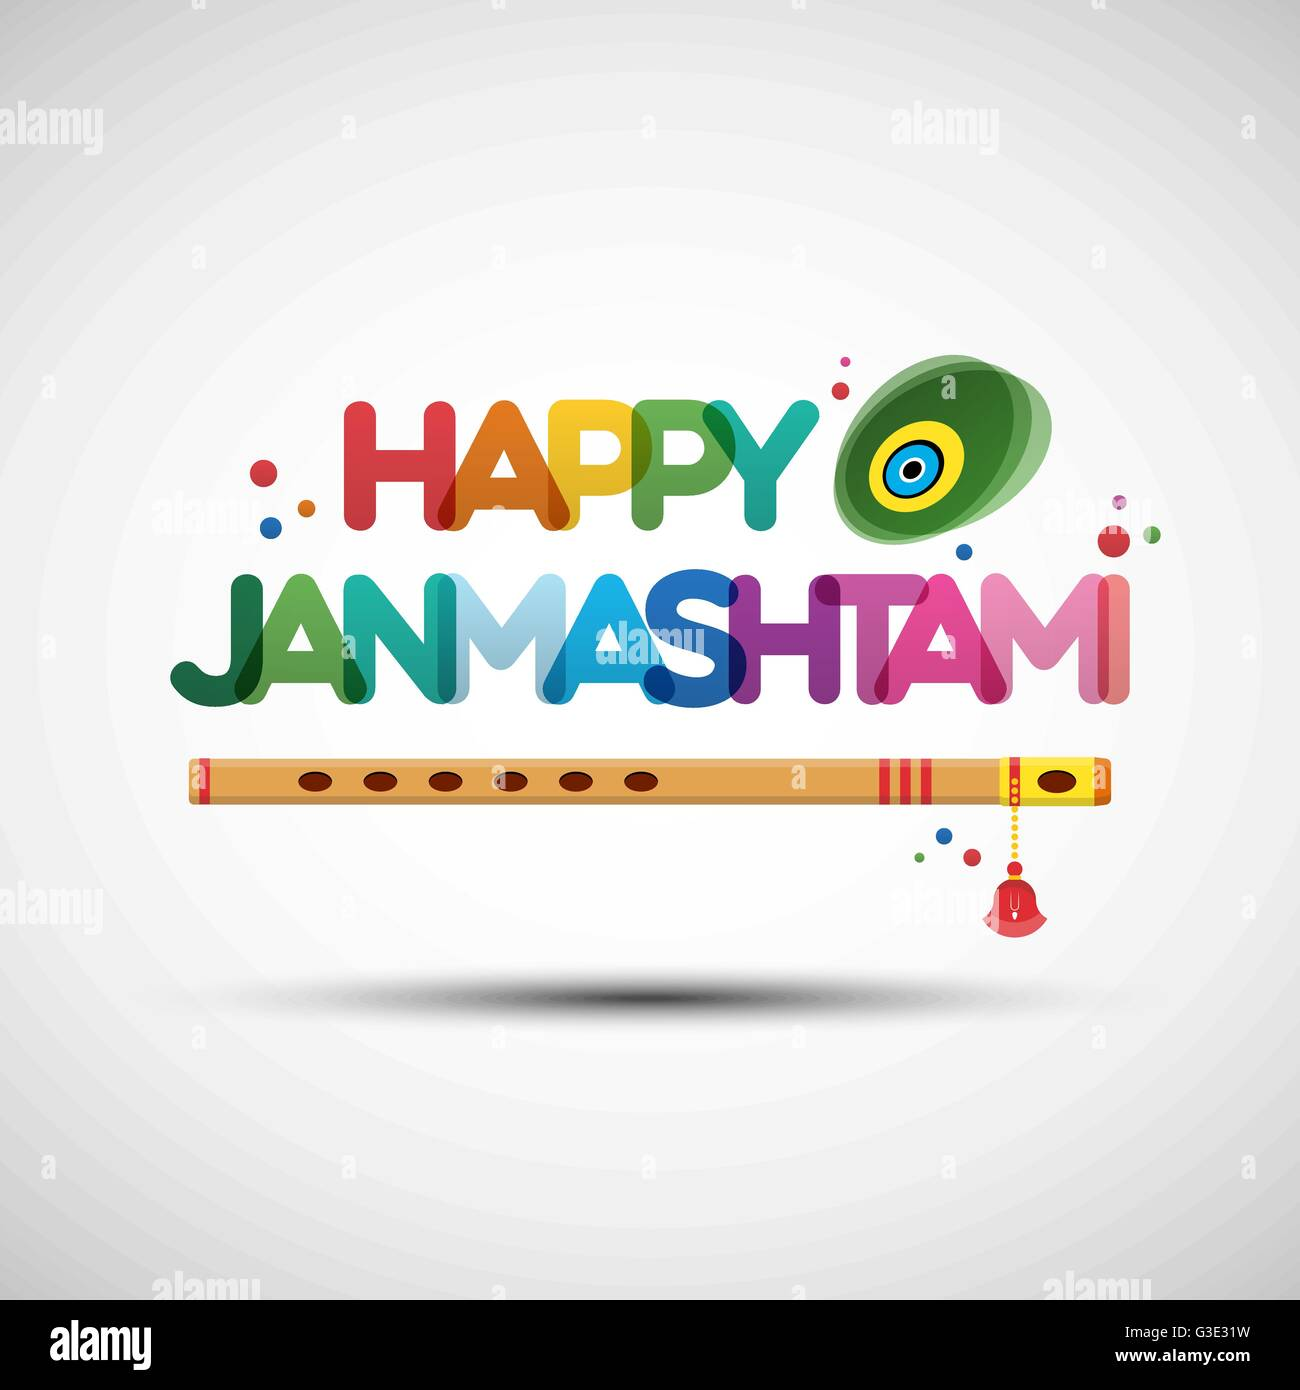 Krishna vector vectors stock photos krishna vector vectors stock vector illustration of krishna janmashtami greeting card design with creative multicolored transparent text happy kristyandbryce Gallery